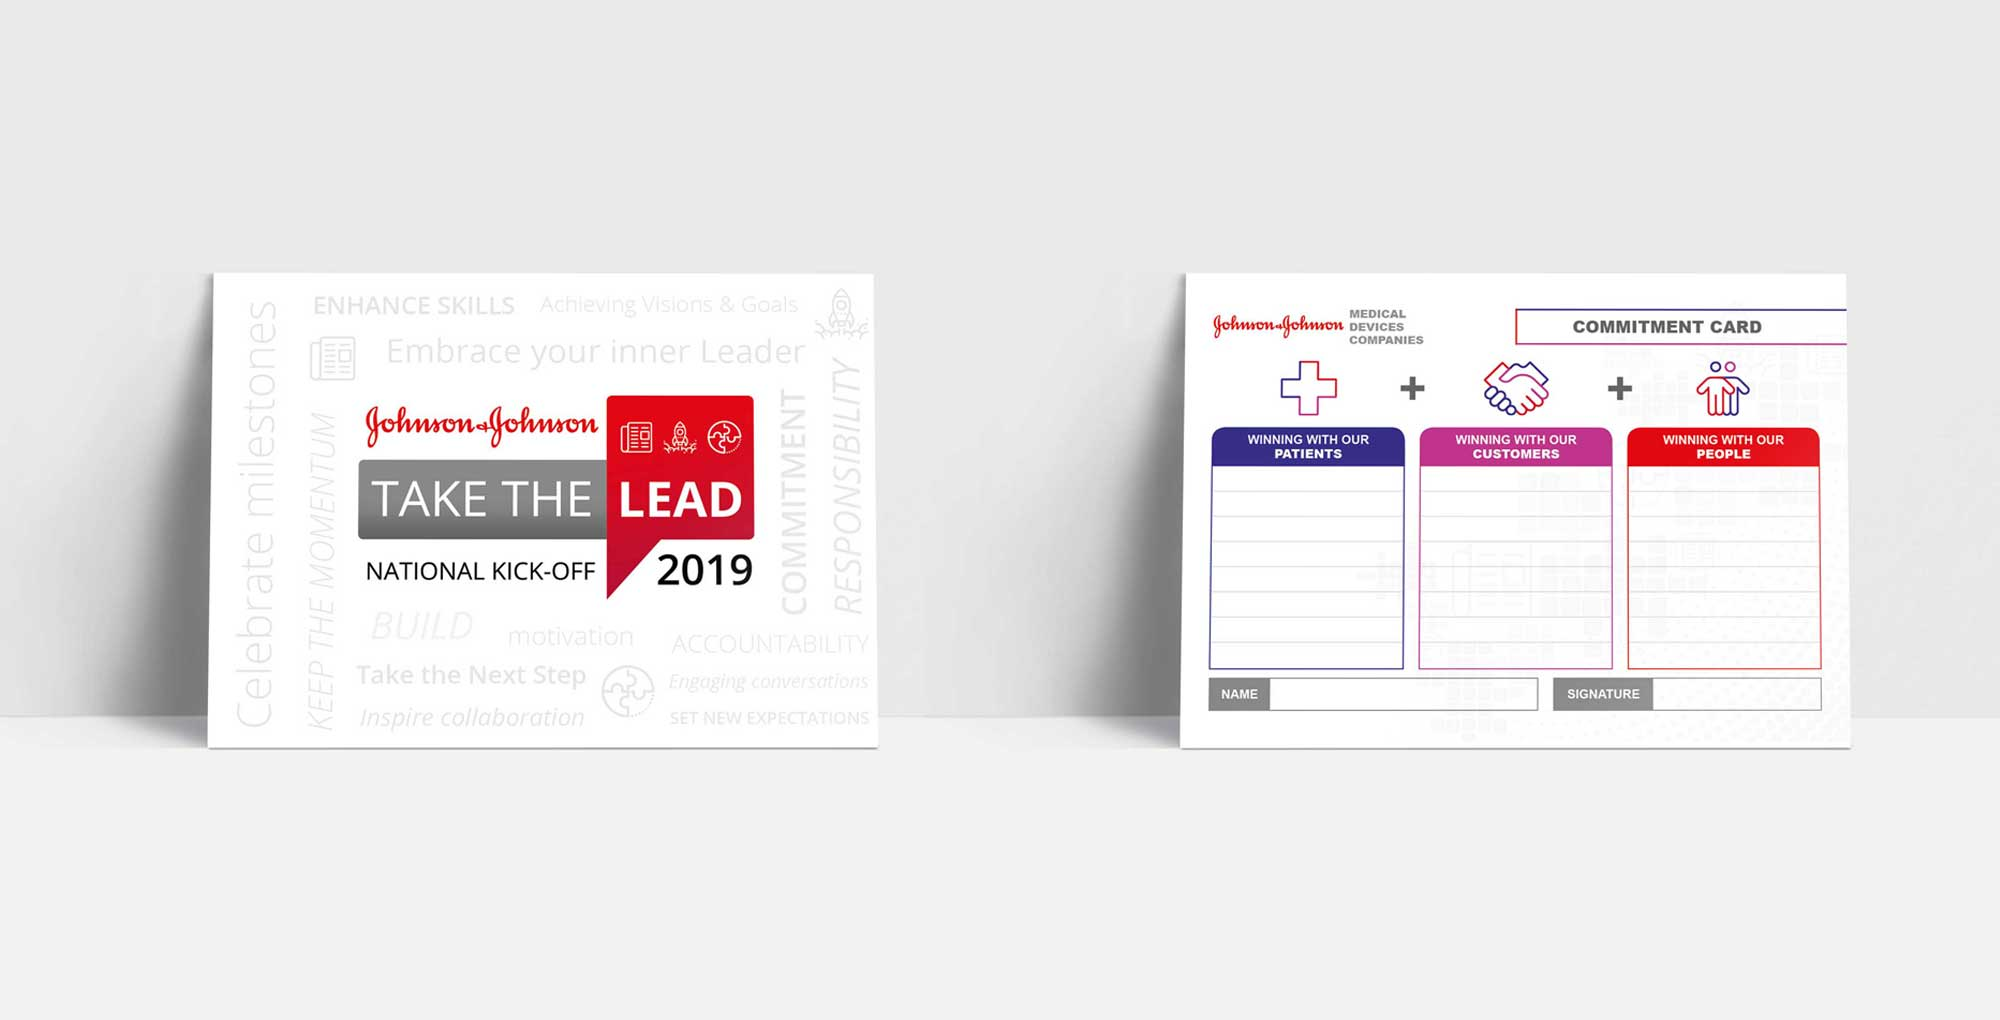 Johnson & Johnson - National Kick-off 2019 - Commitment Cards